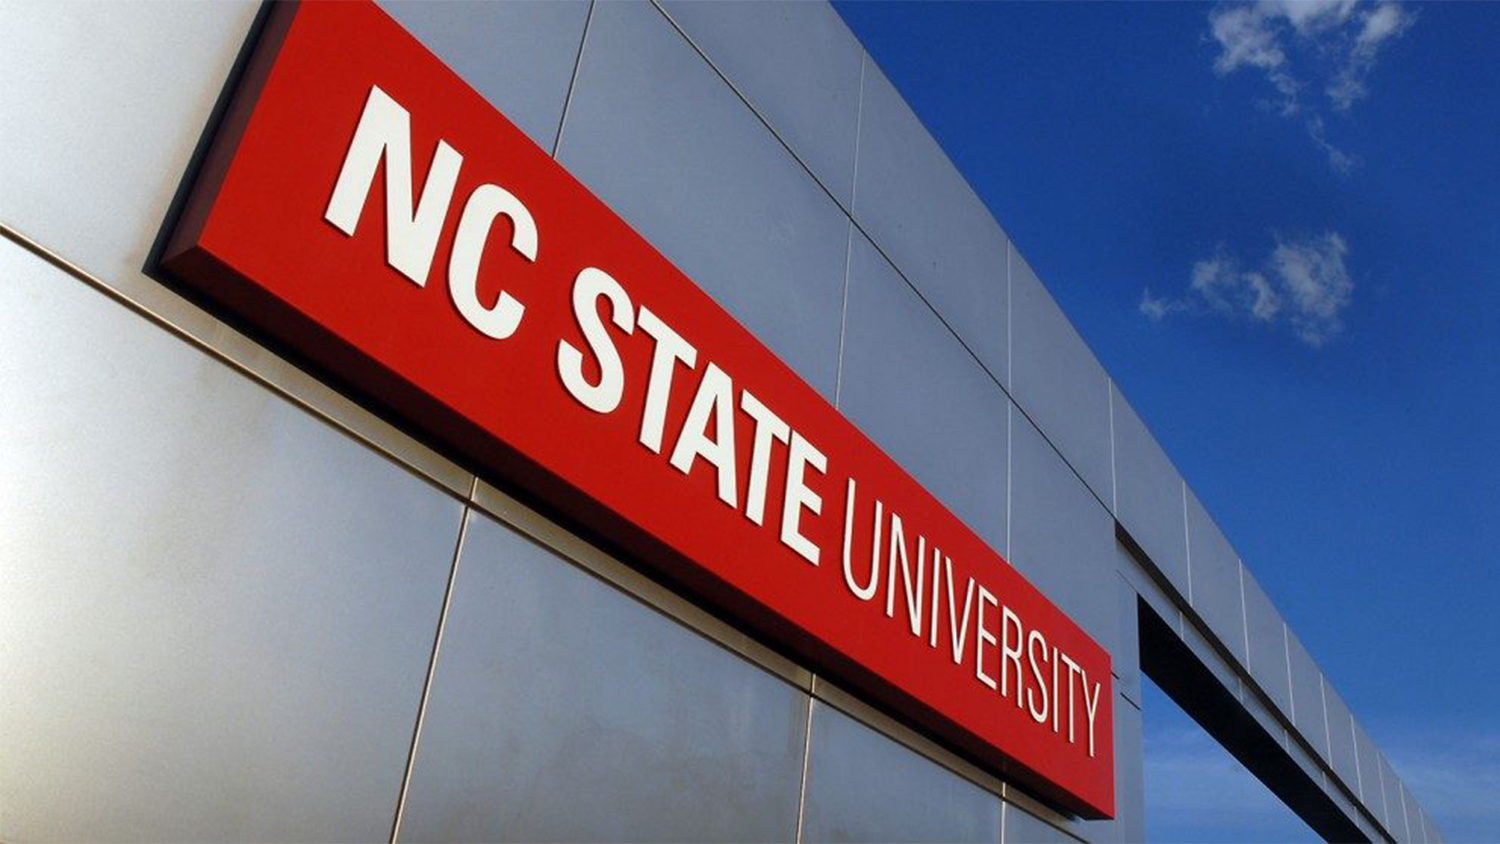 NC State Sign